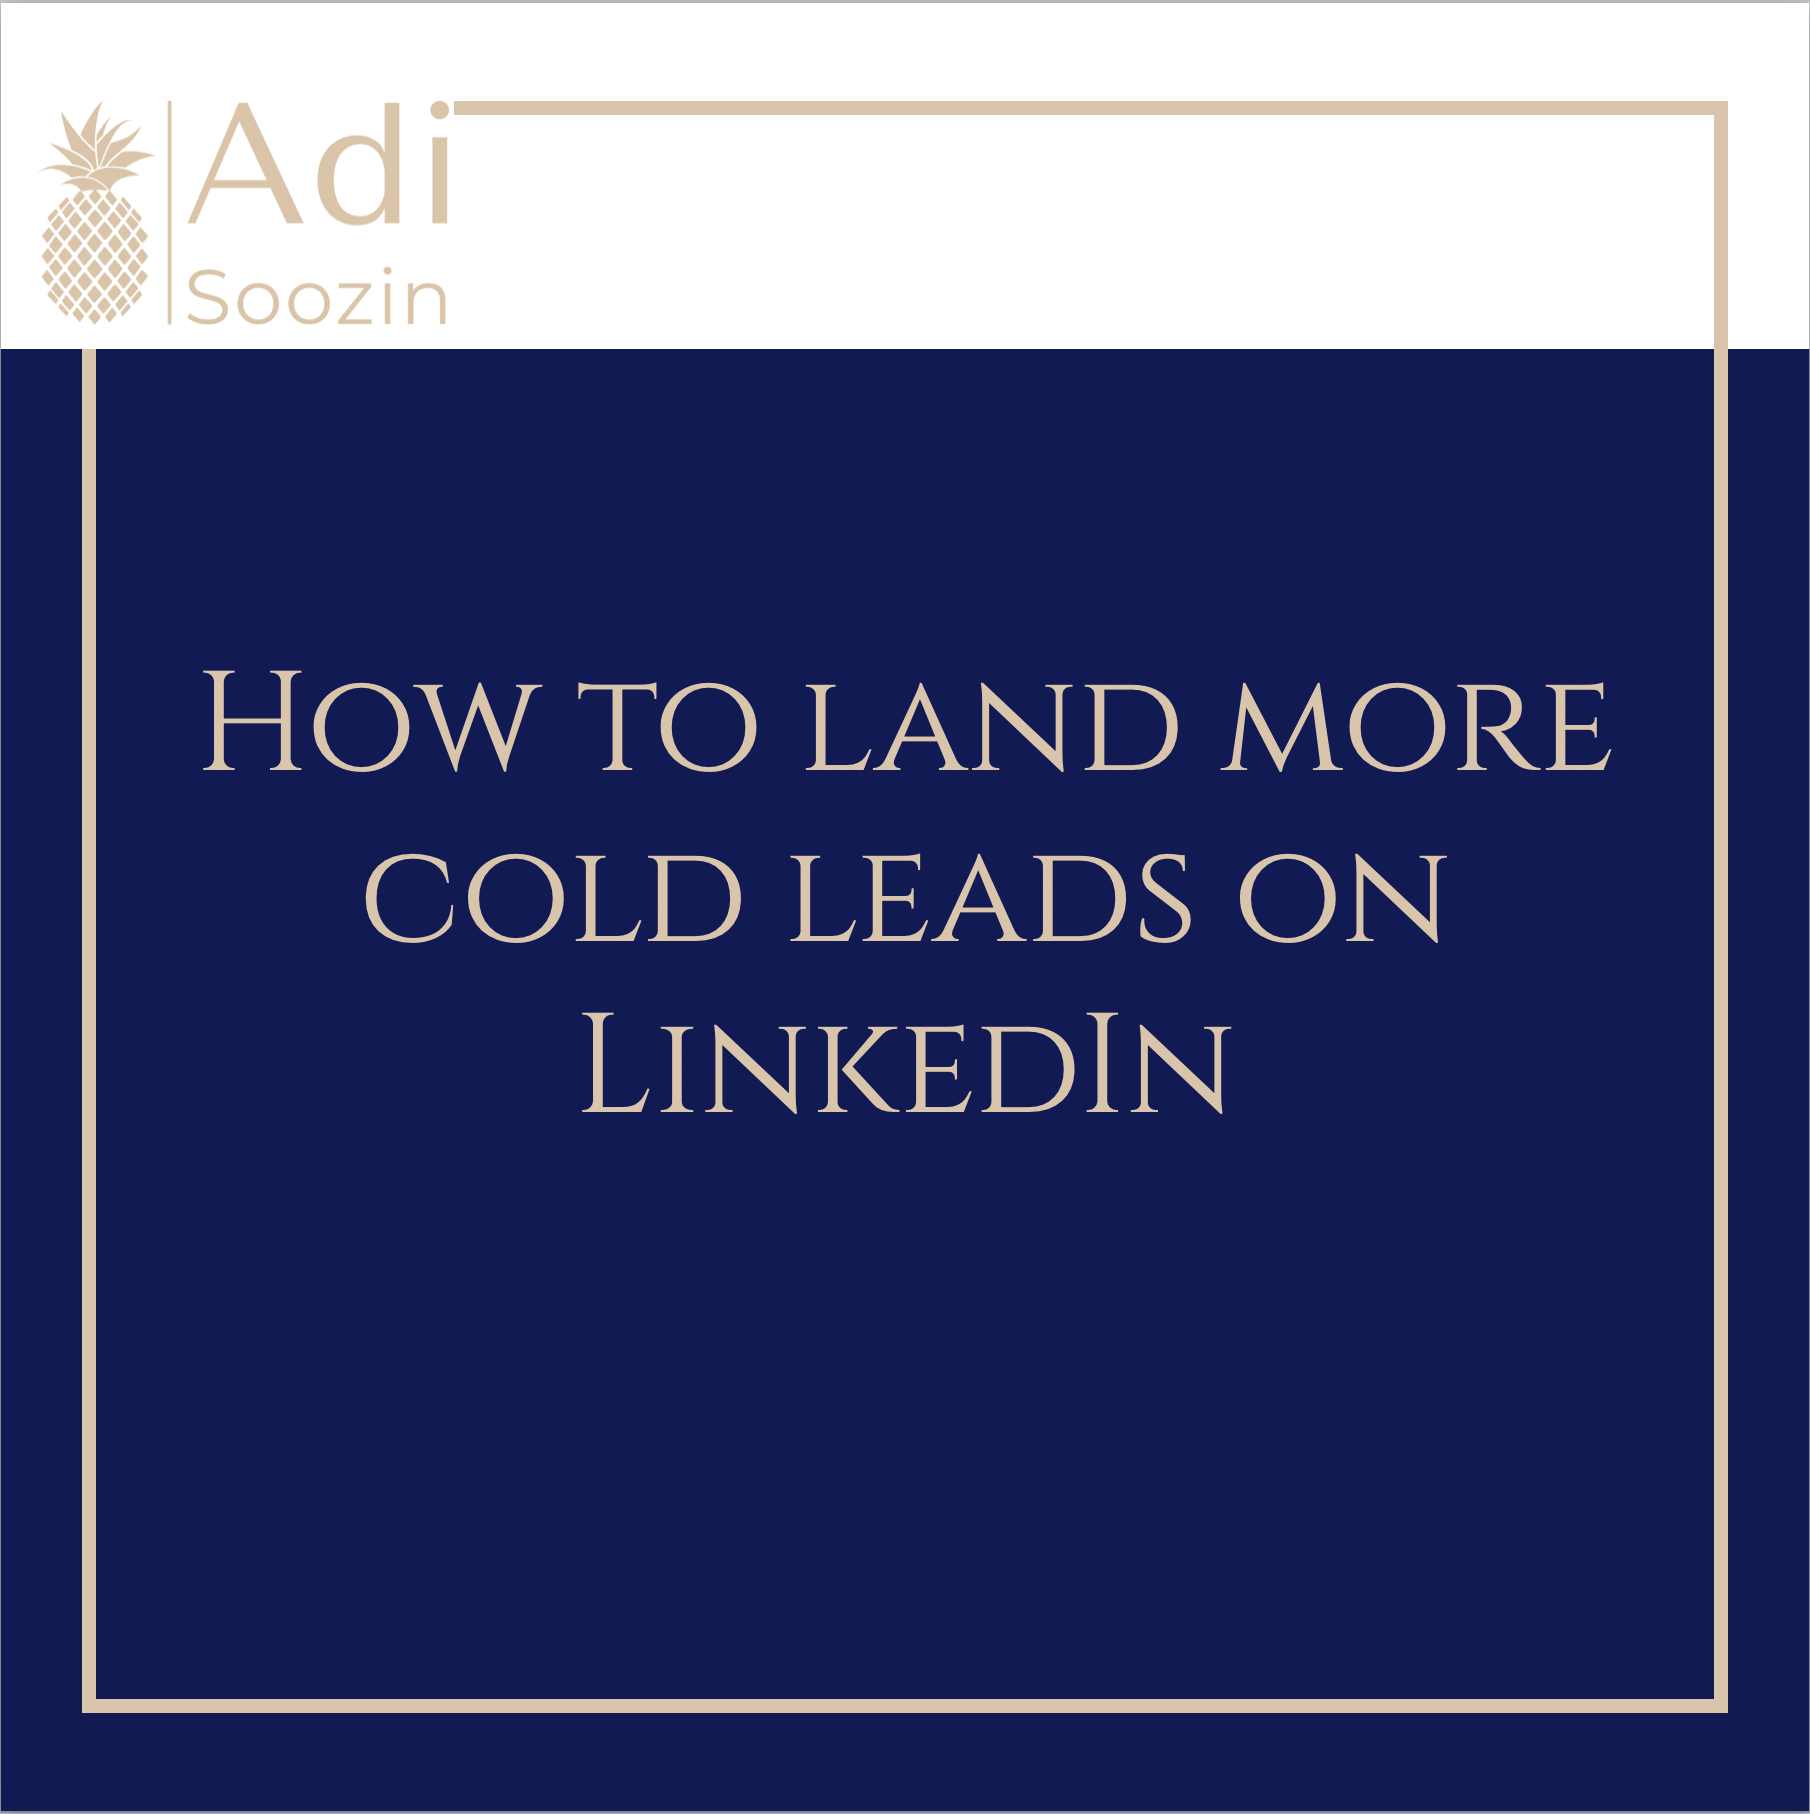 How To Land More Cold Leads On LinkedIn